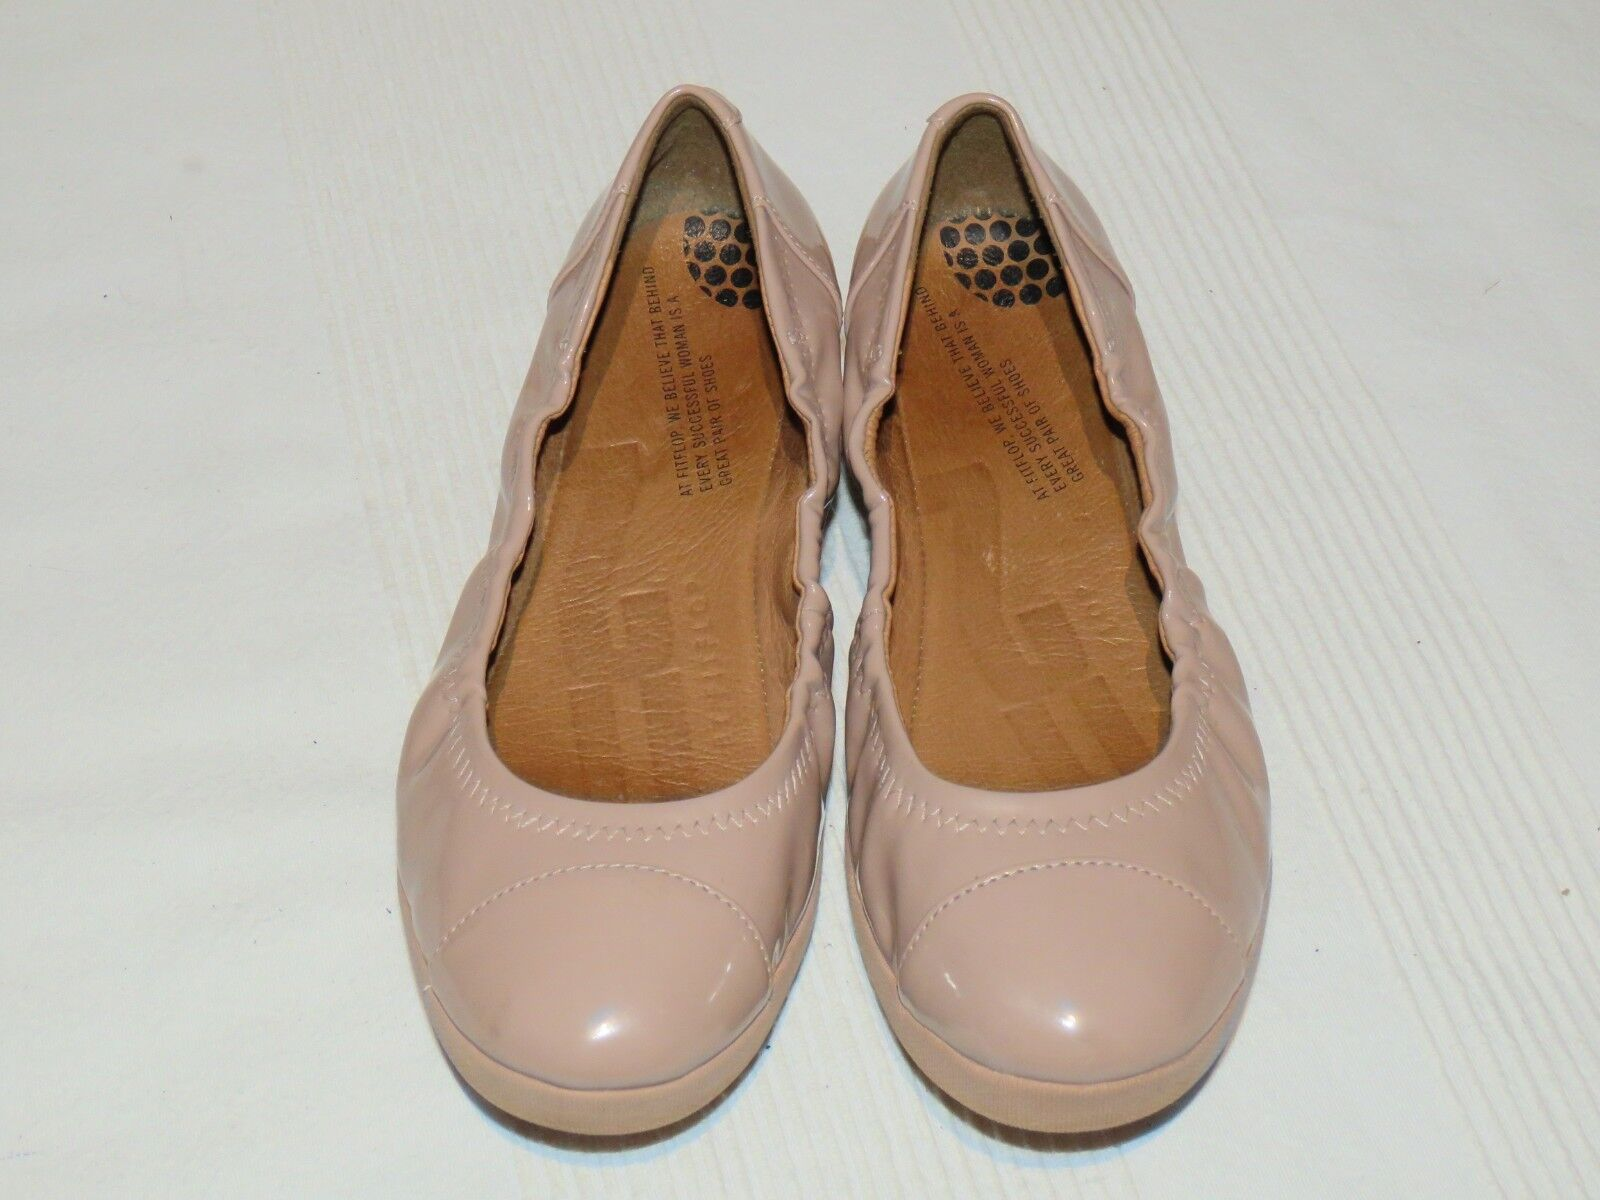 FF2TM BY FitFlop™ F-POP NUDE PATENT LEATHER BALLERINA PUMPS UK 4 4 UK EUR 37 917934